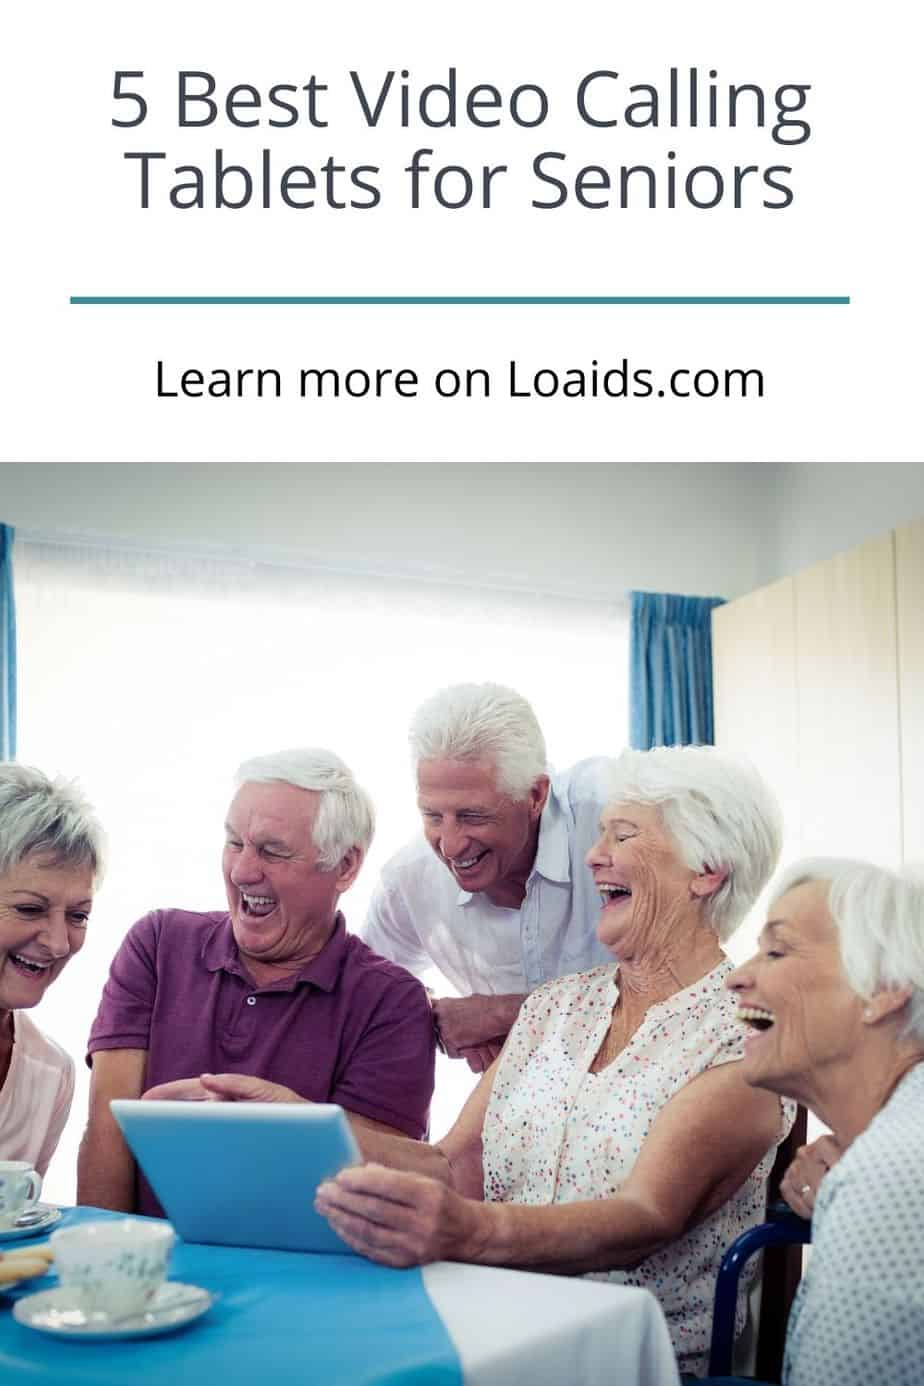 group of senior citizens using a tablet for video calling